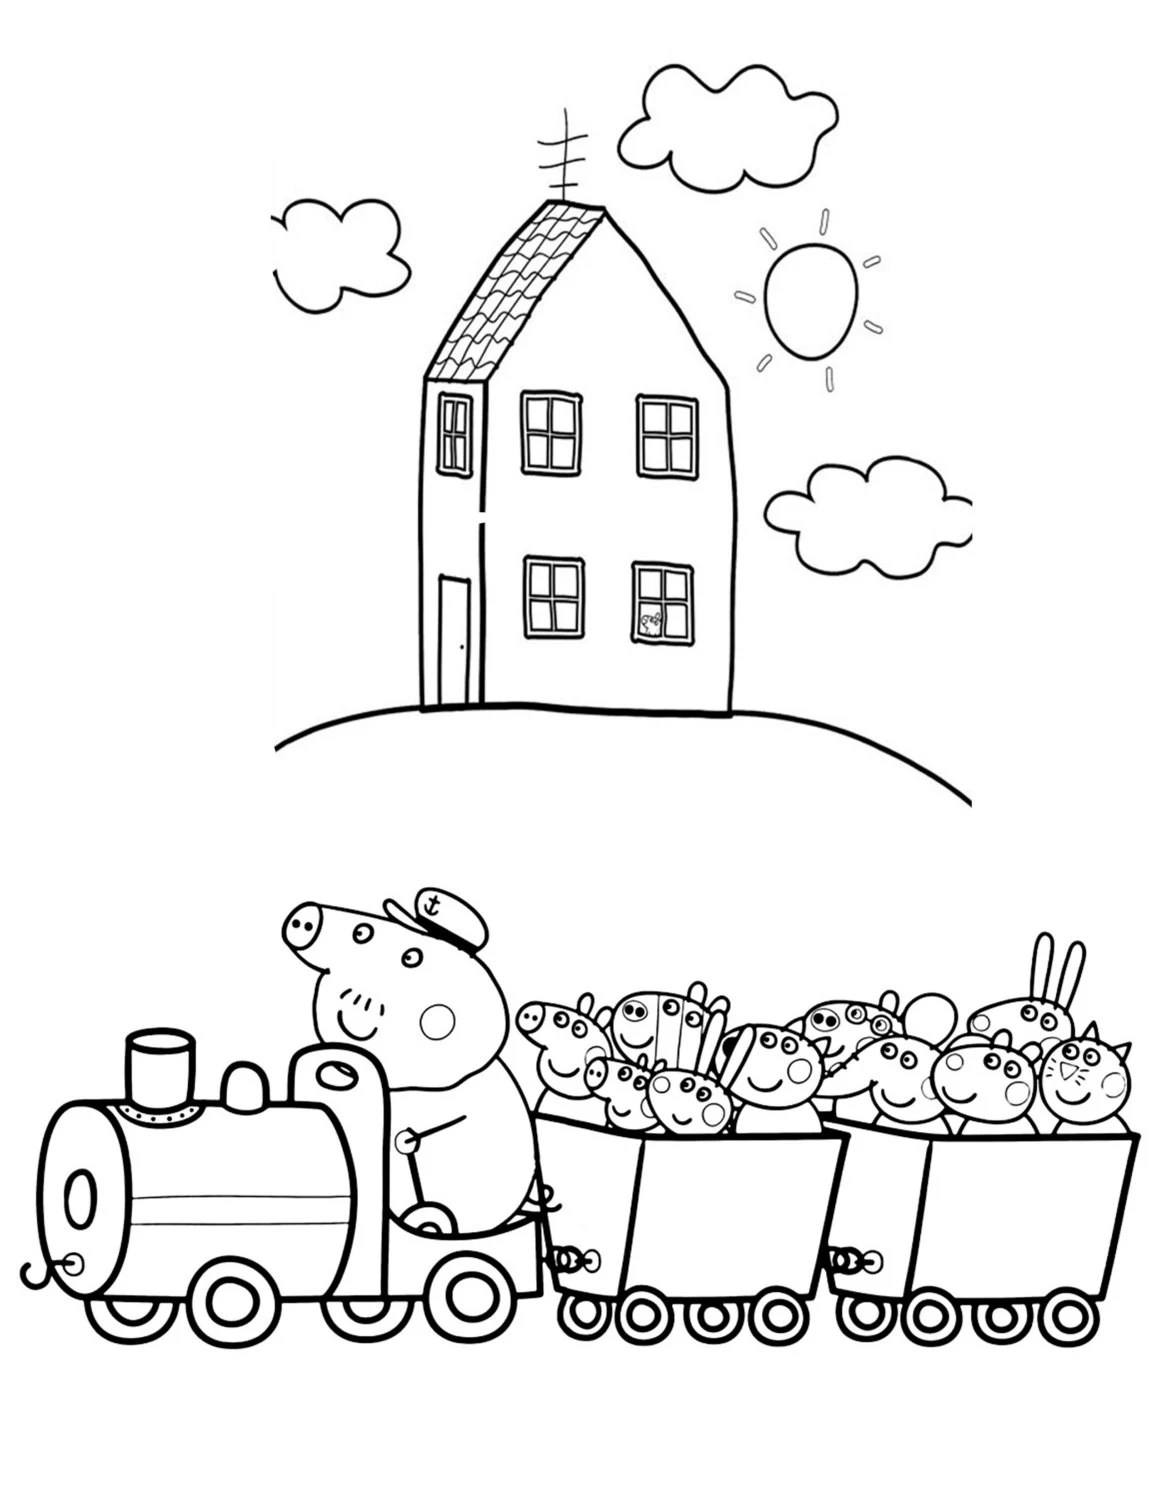 Peppa pig coloring pages printable for children of all